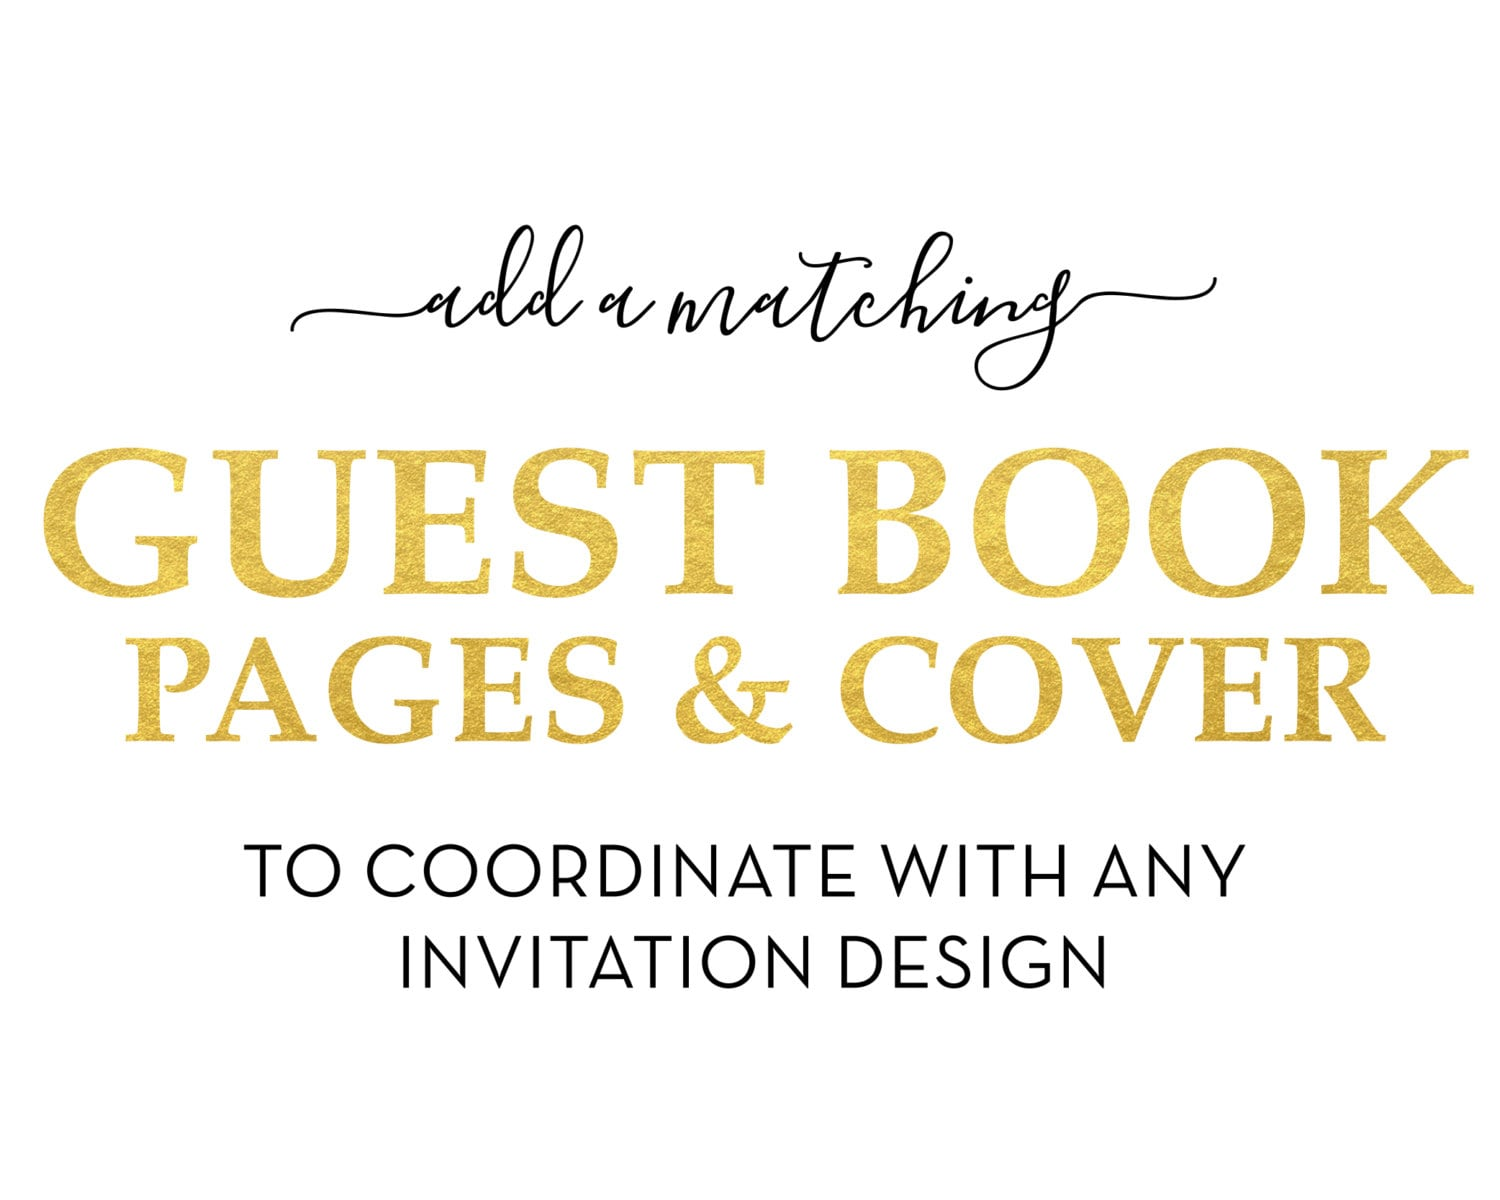 Printable Wedding Book Cover : Printable guest book page and cover stationary bridal shower